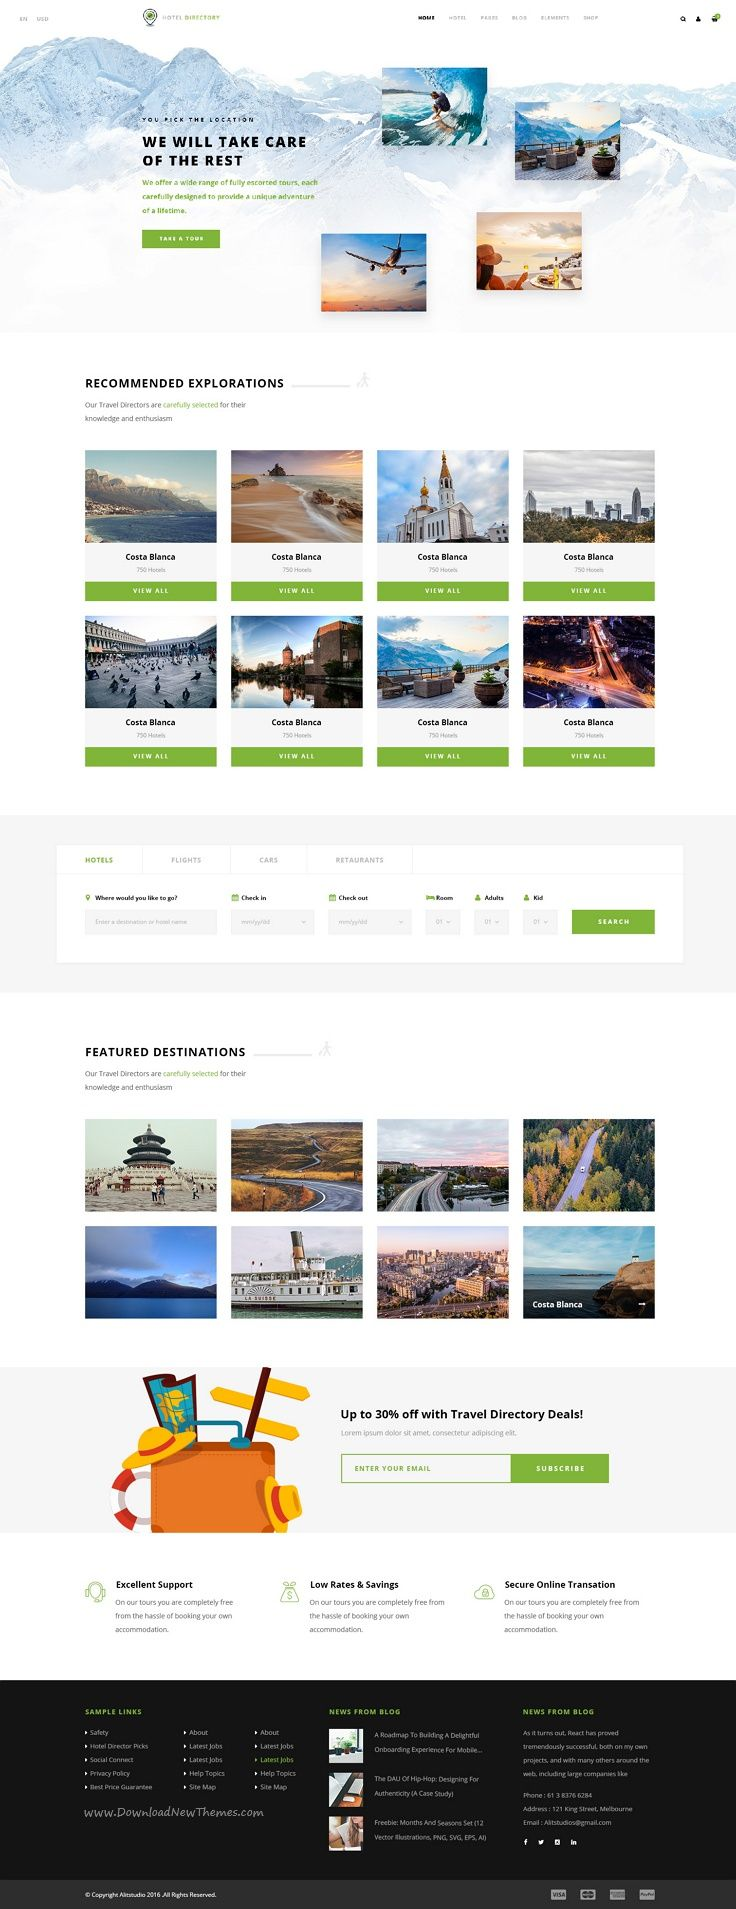 Hotel directory is a modern and perfect psd template for hotel tours and